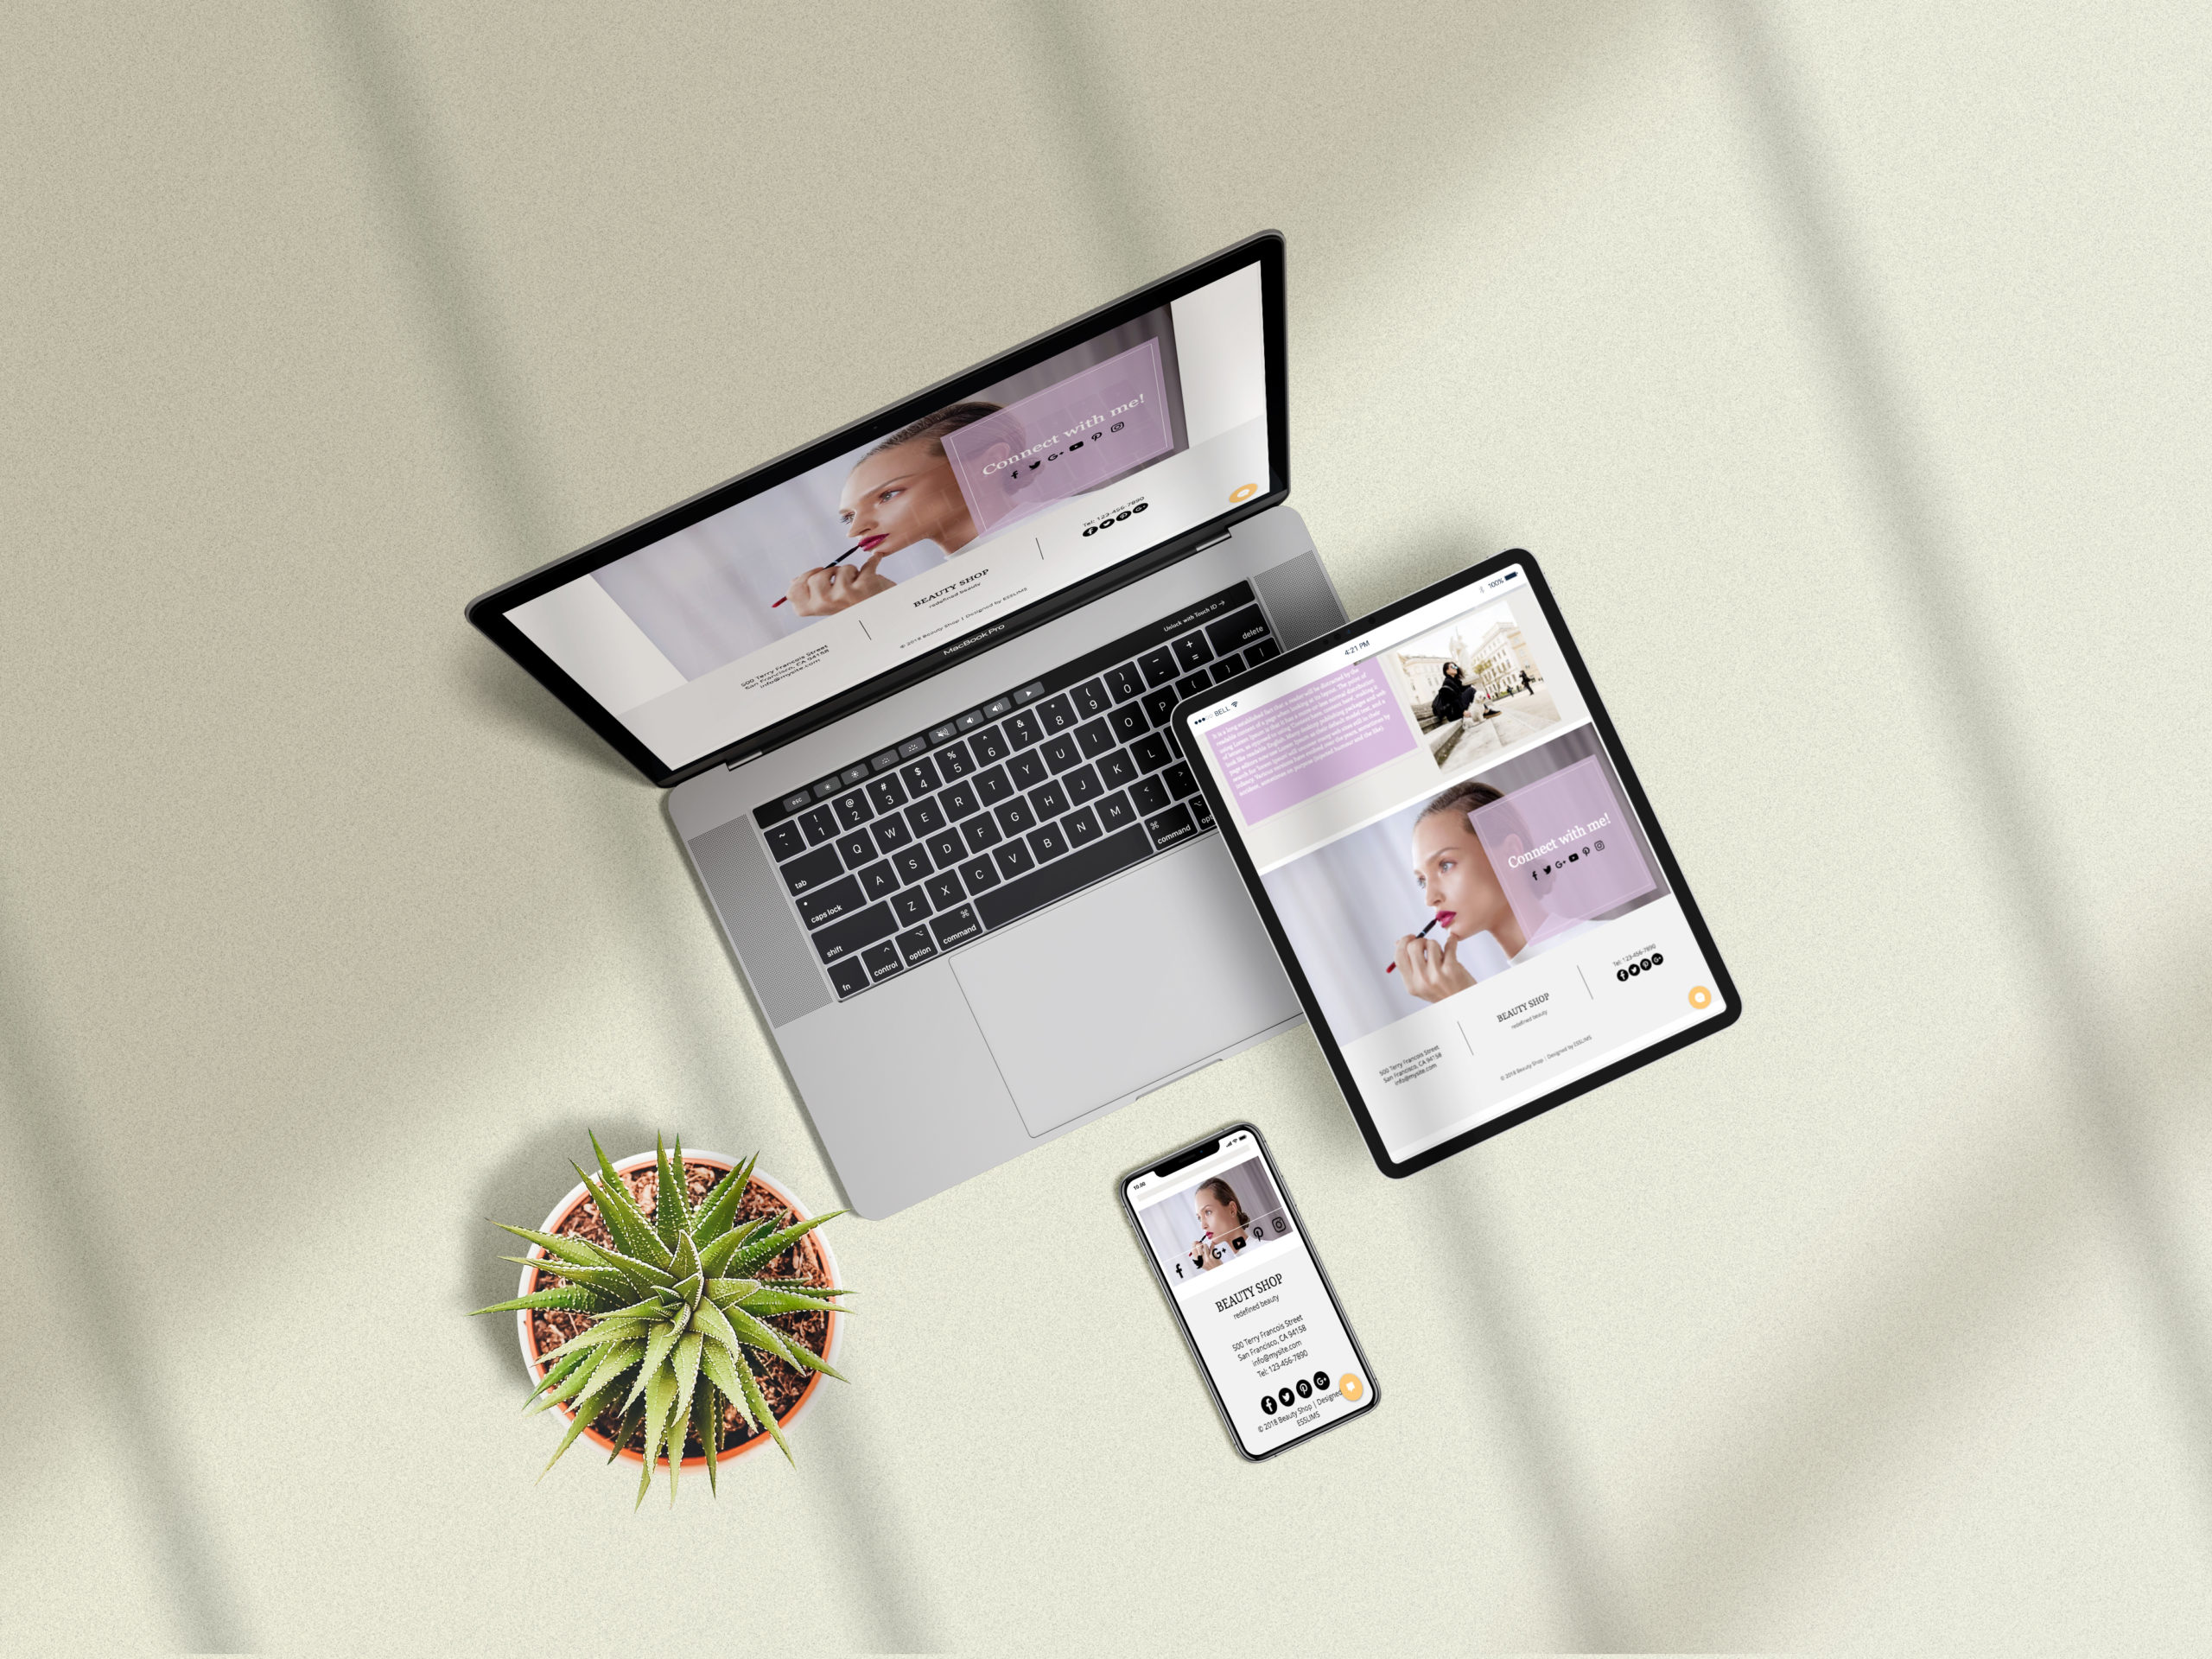 wix-website-Multi-Devices-Mockup-Scene-Vol01